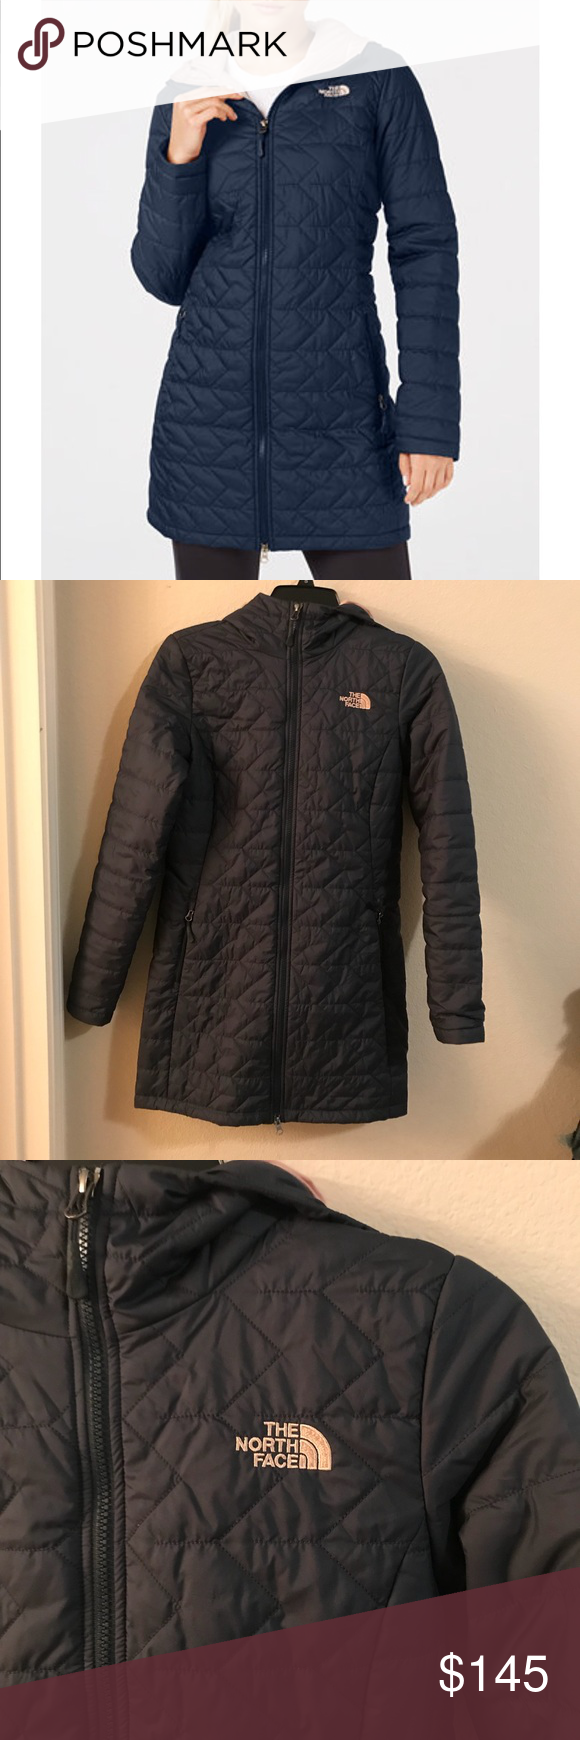 8bbb5e979 The North Face Hooded Coat XS Navy Blue The North Face Tamburello ...